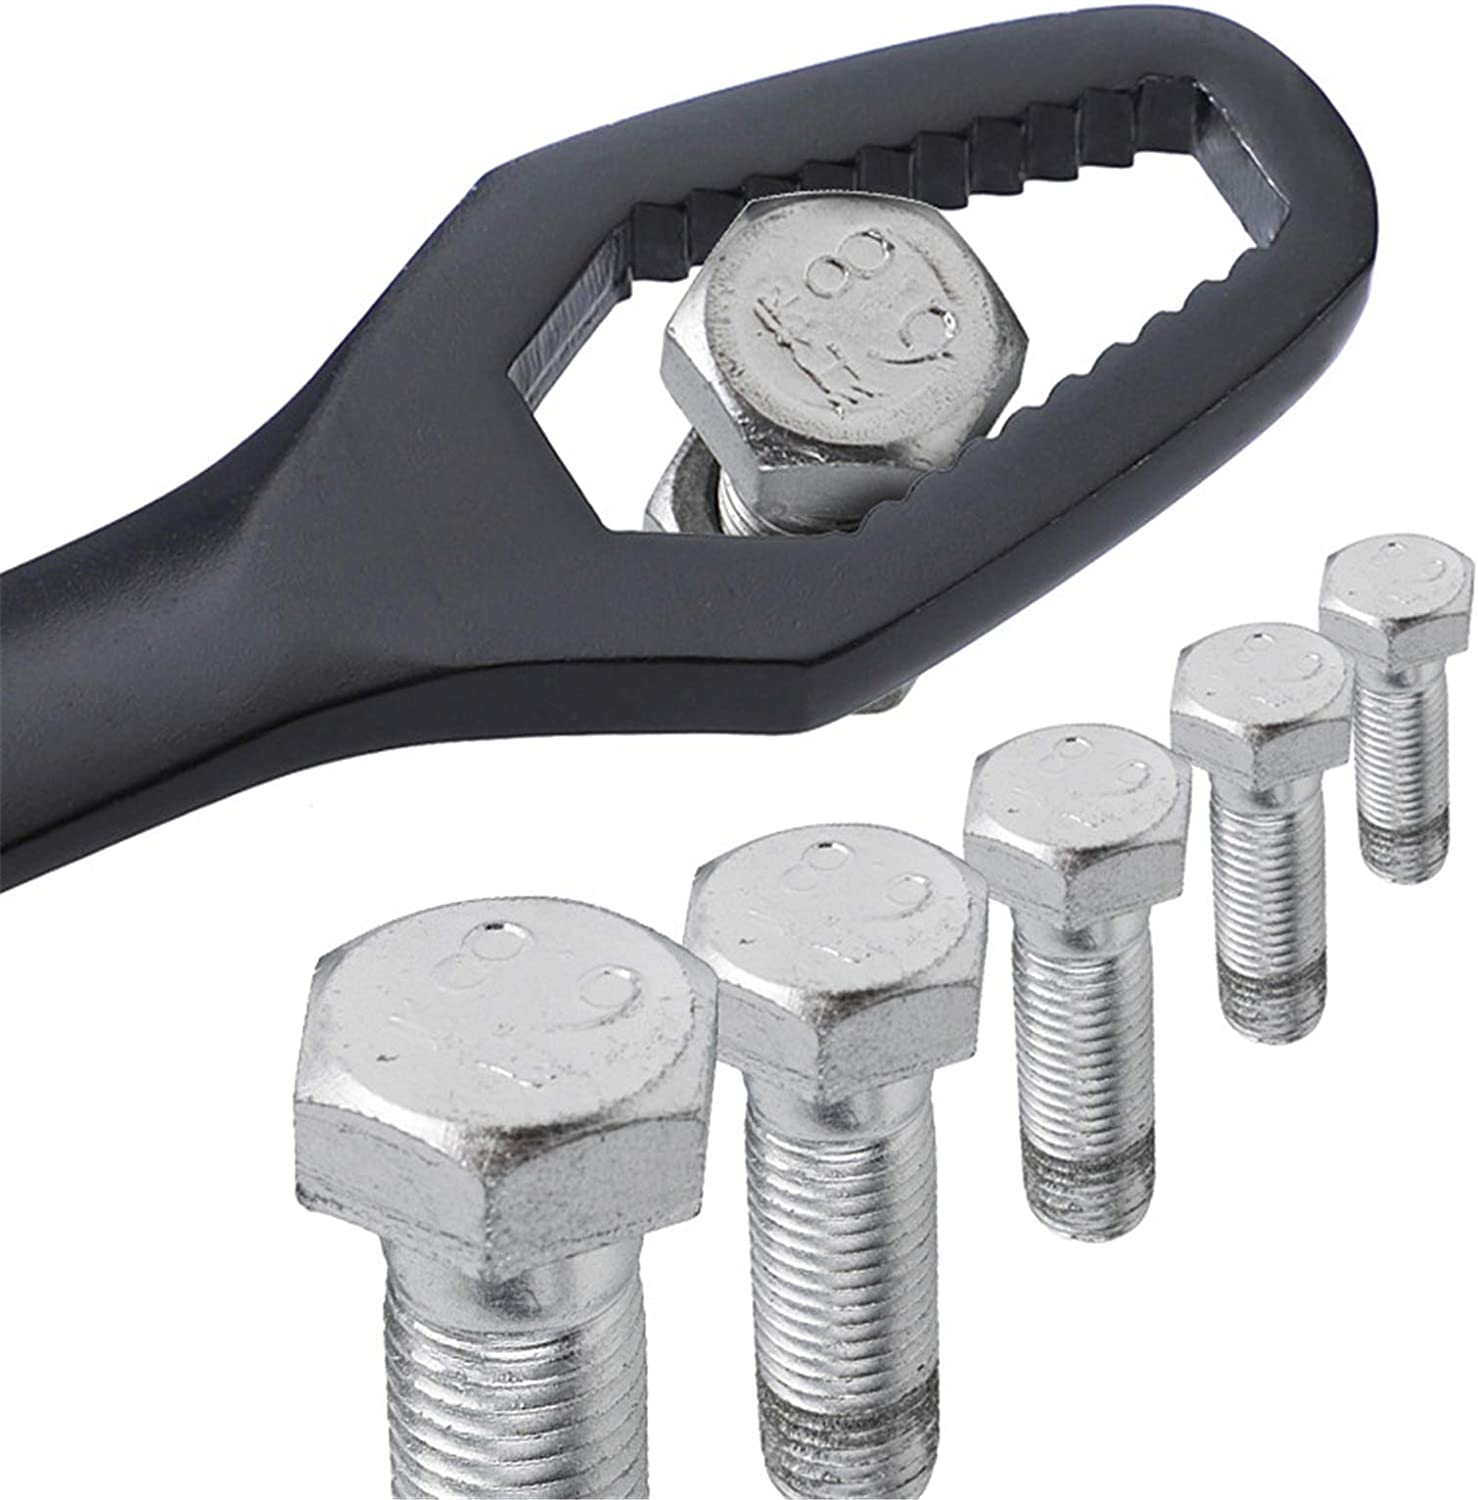 hebaotong Double-Headed Self-Tightening Wrench Multipurpose Spanner 8-22mm Key Set Screw Nuts Wrenches Self-Tightening Repair for Screw Nuts Removal